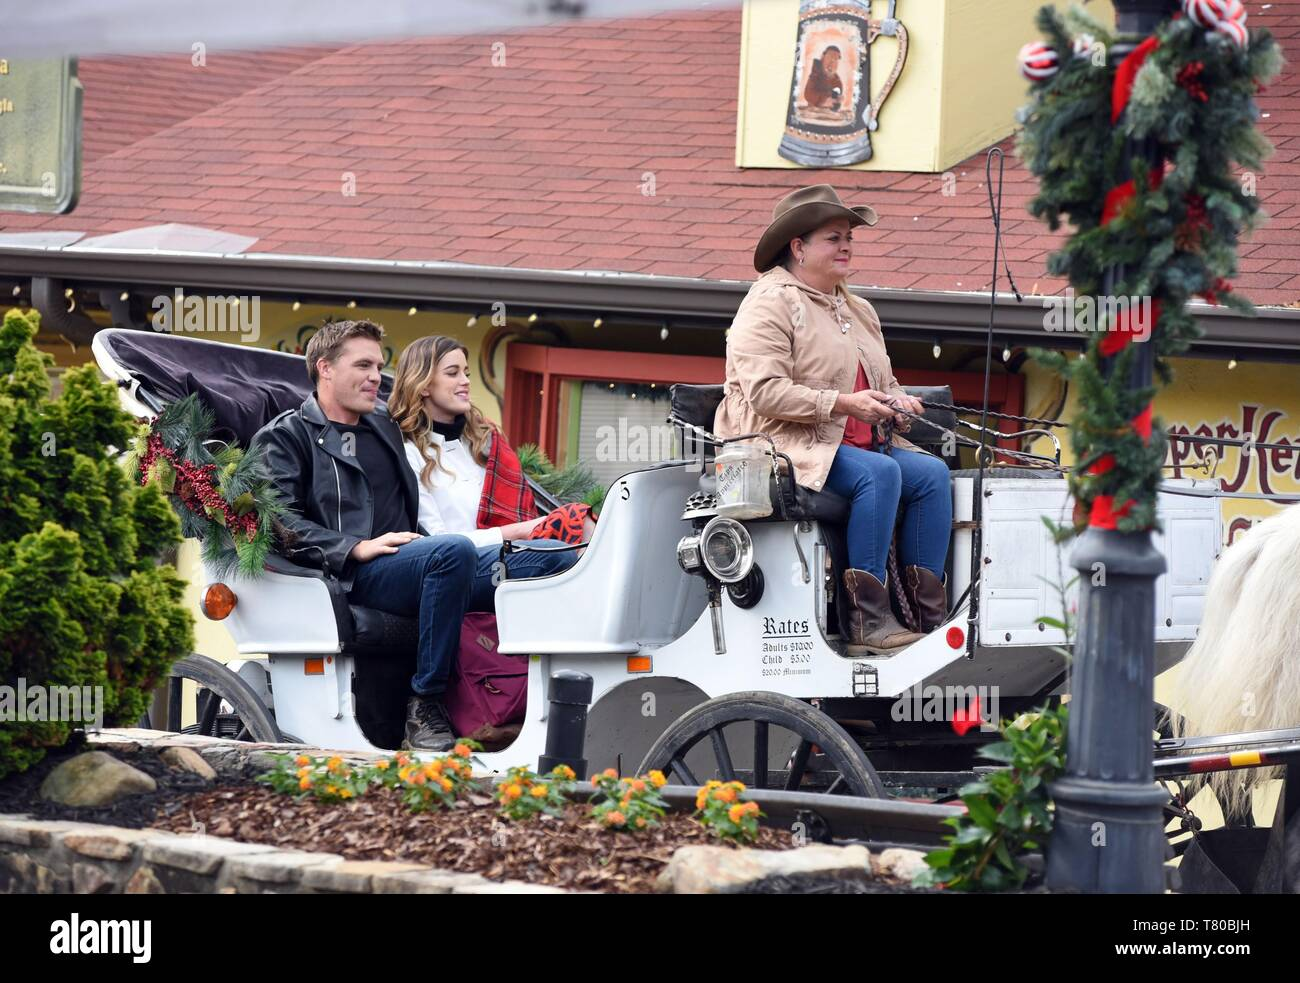 Helen Ga Christmas.Helen Ga Usa 9th May 2019 Tilky Jones Ashley Newbrough